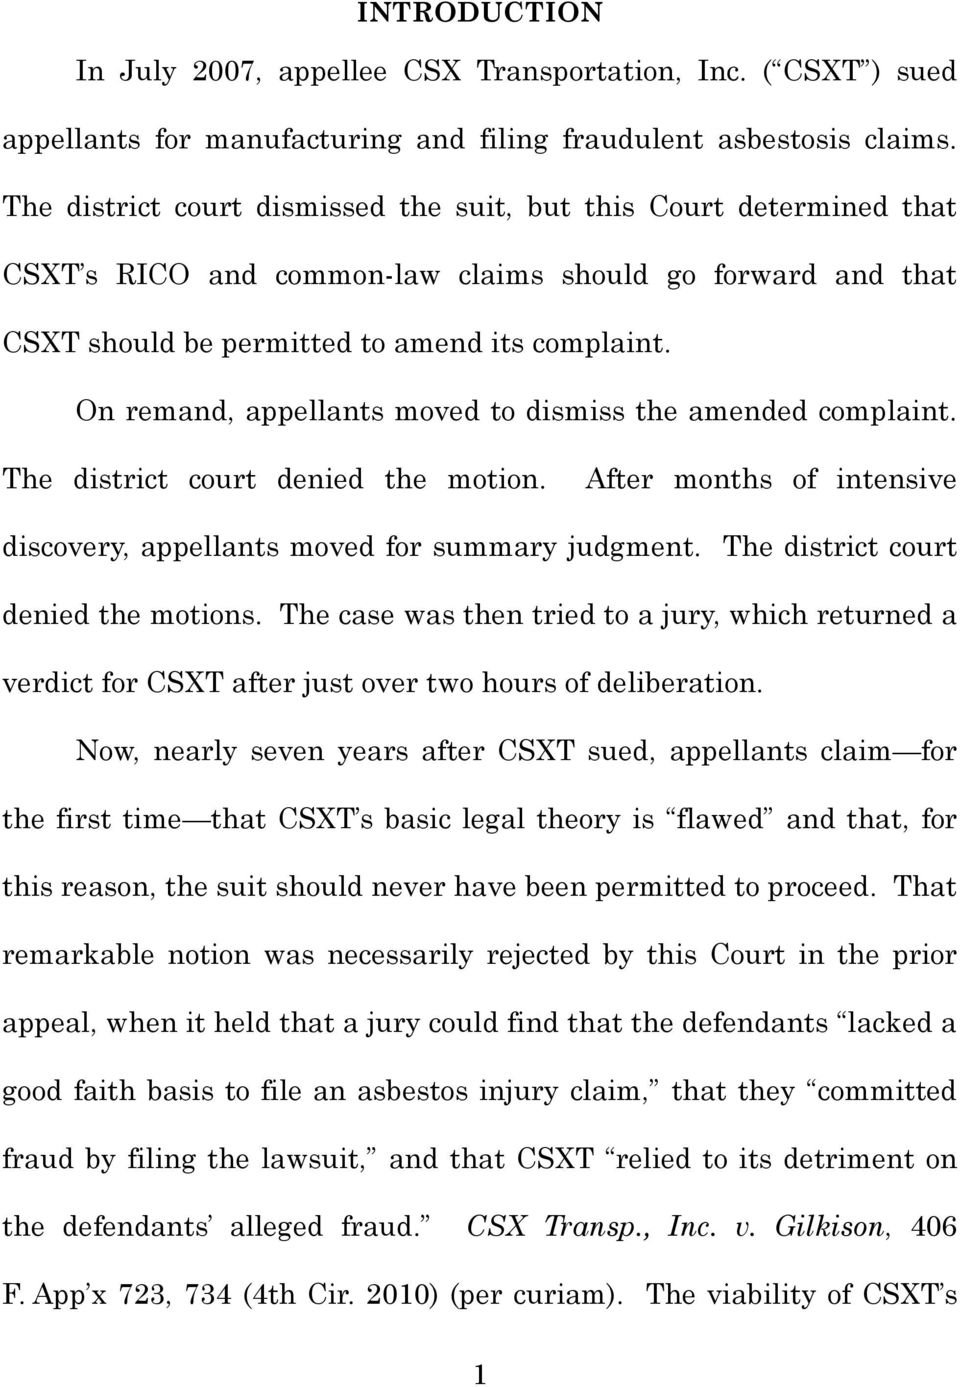 On remand, appellants moved to dismiss the amended complaint. The district court denied the motion. After months of intensive discovery, appellants moved for summary judgment.